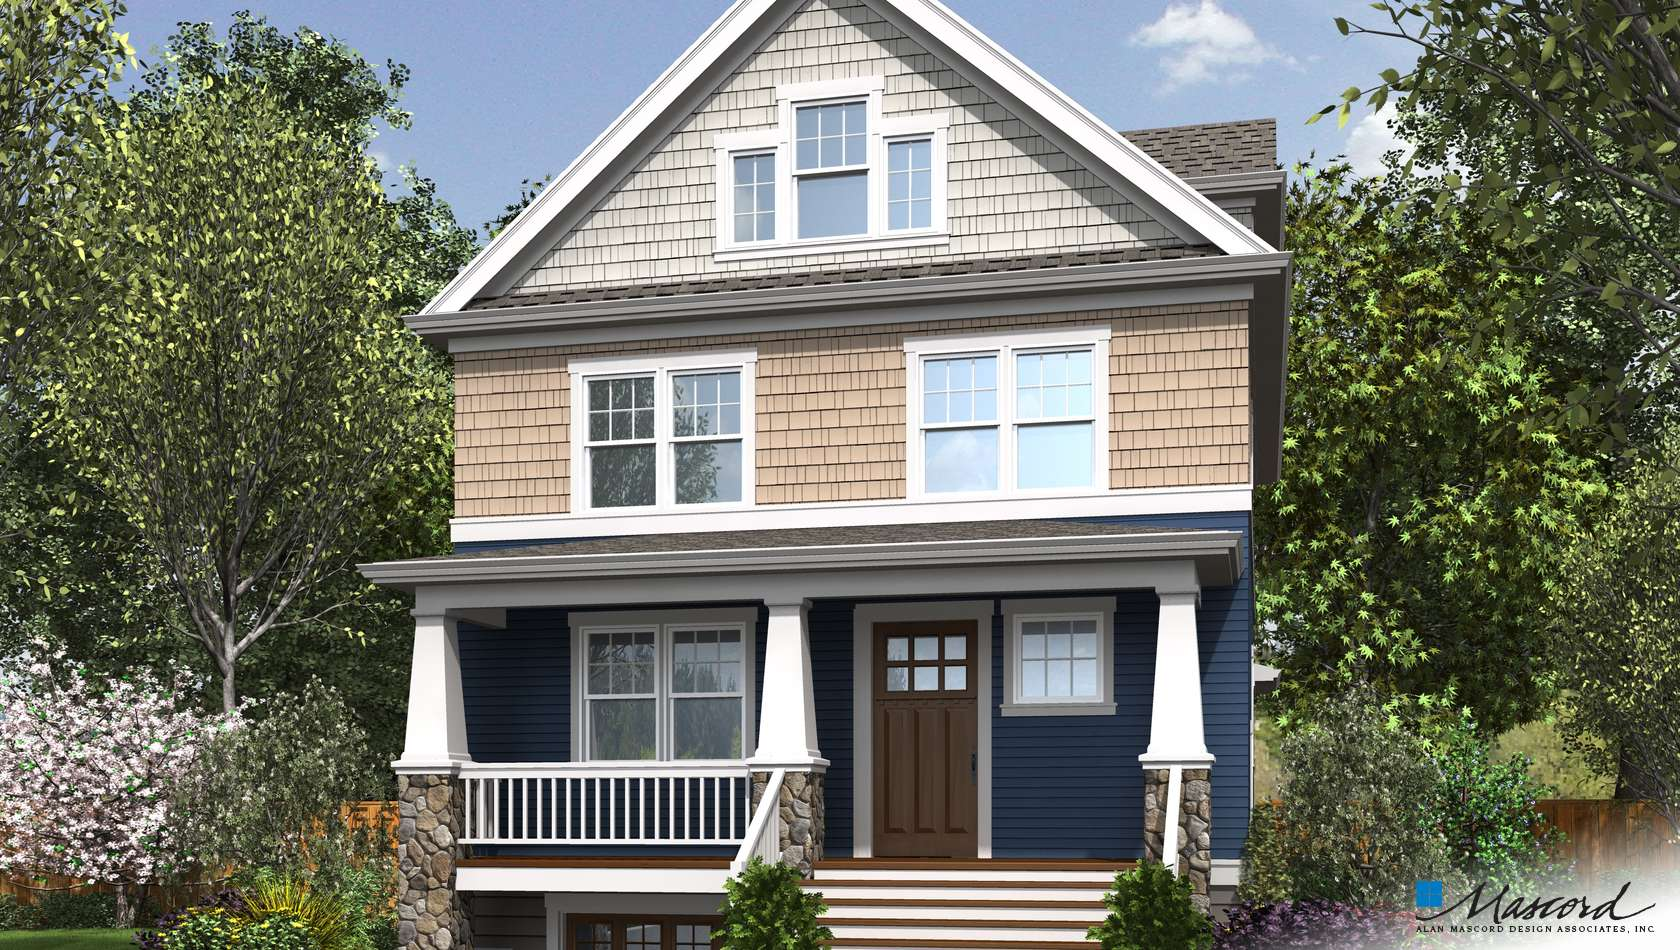 Mascord House Plan 23108: The Manchester